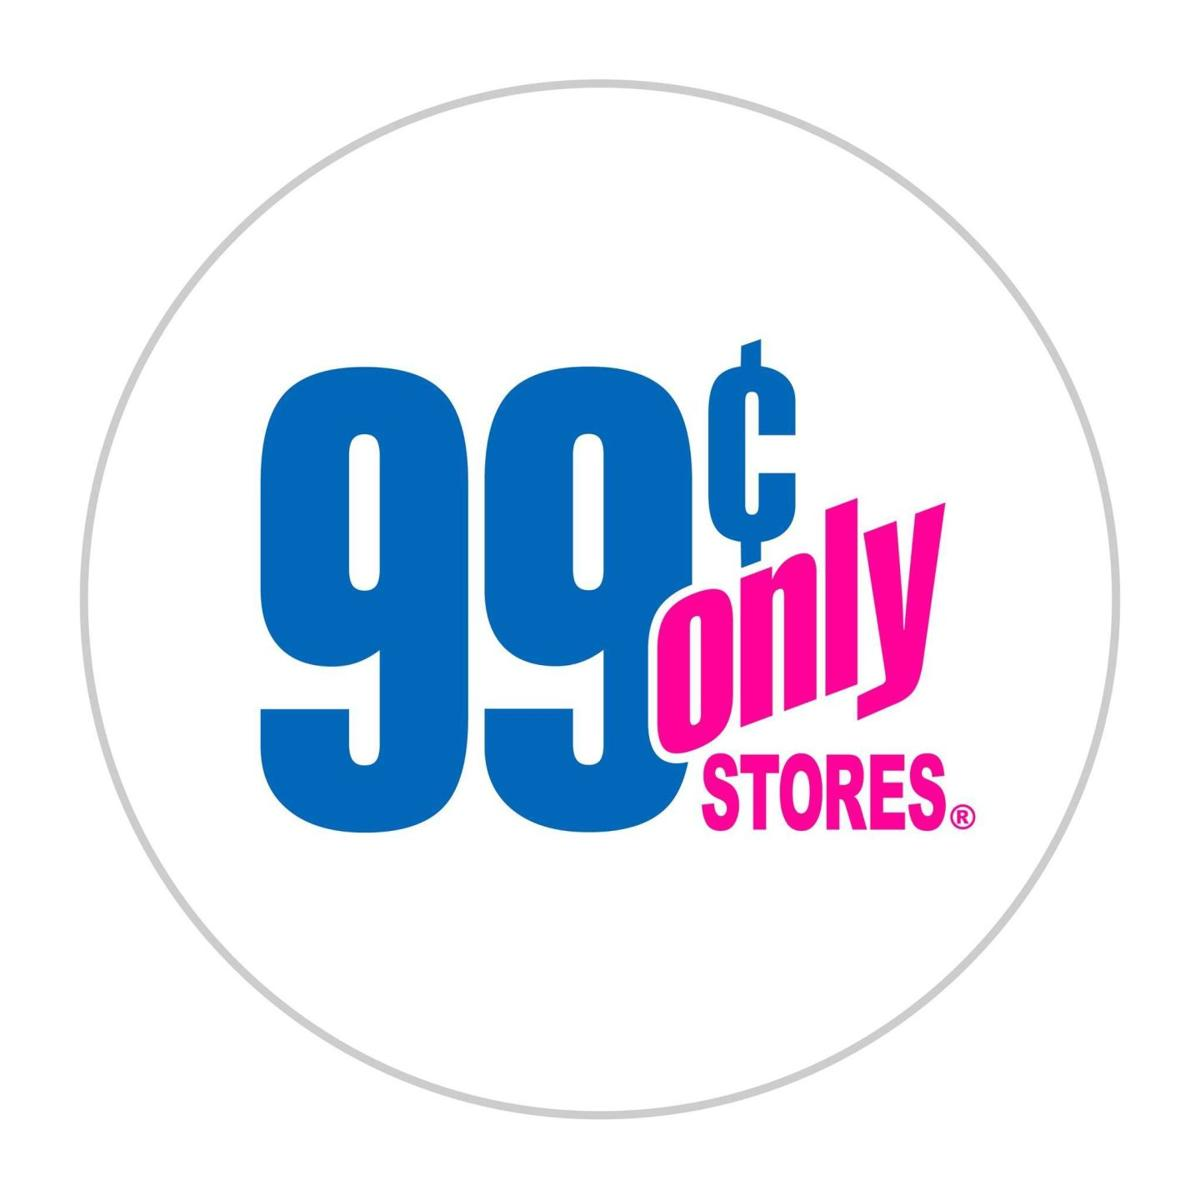 Purchase Flat Screen LED TV For 99 Cents At Only Stores Grand Opening Wednesday